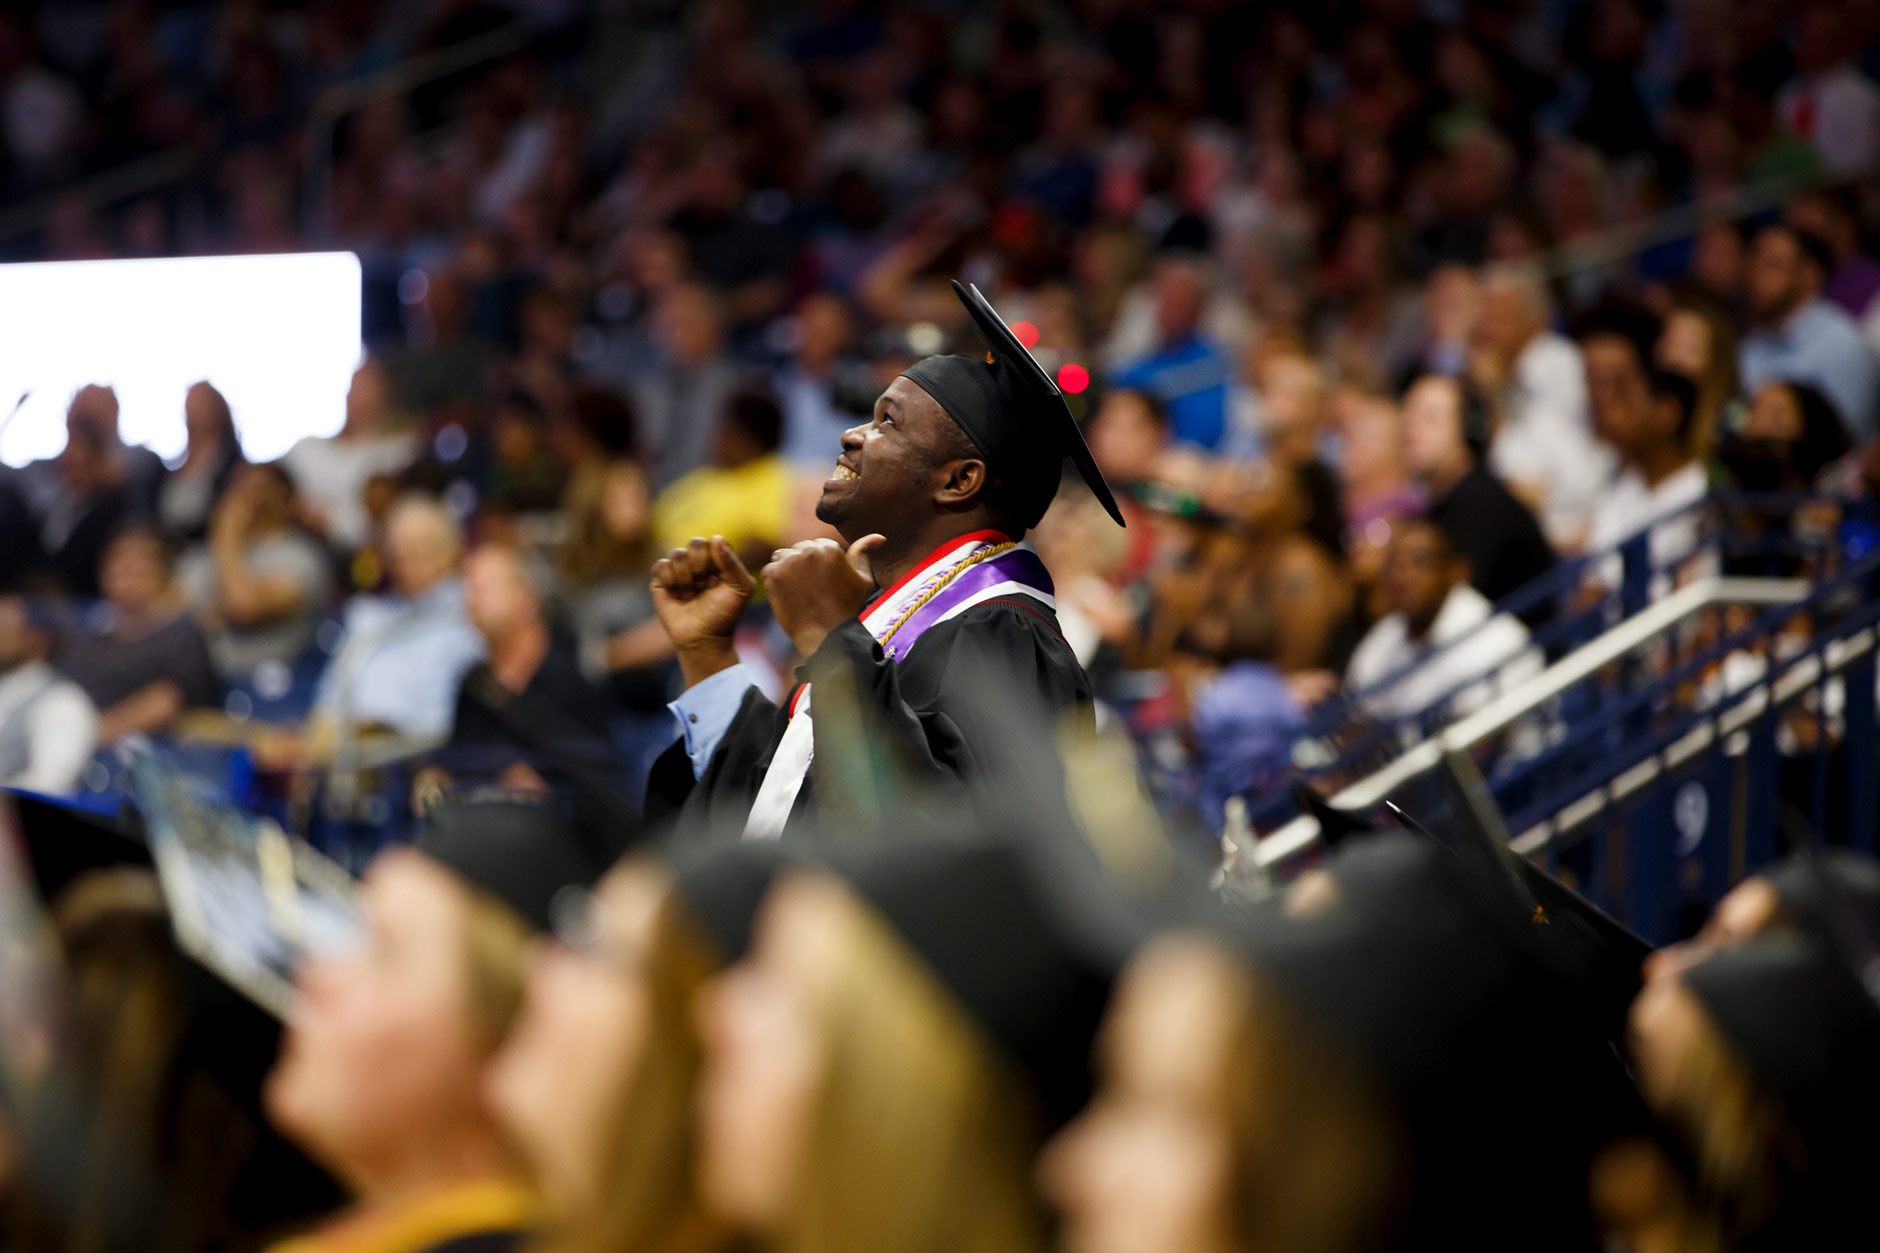 Graduate Desmond Atem reacts as he is recognized by Indiana University South Bend Chancellor Terry L. Allison during the IU South Bend Commencement at the University of Notre Dame on Tuesday, May 8, 2018. (James Brosher/IU Communications)